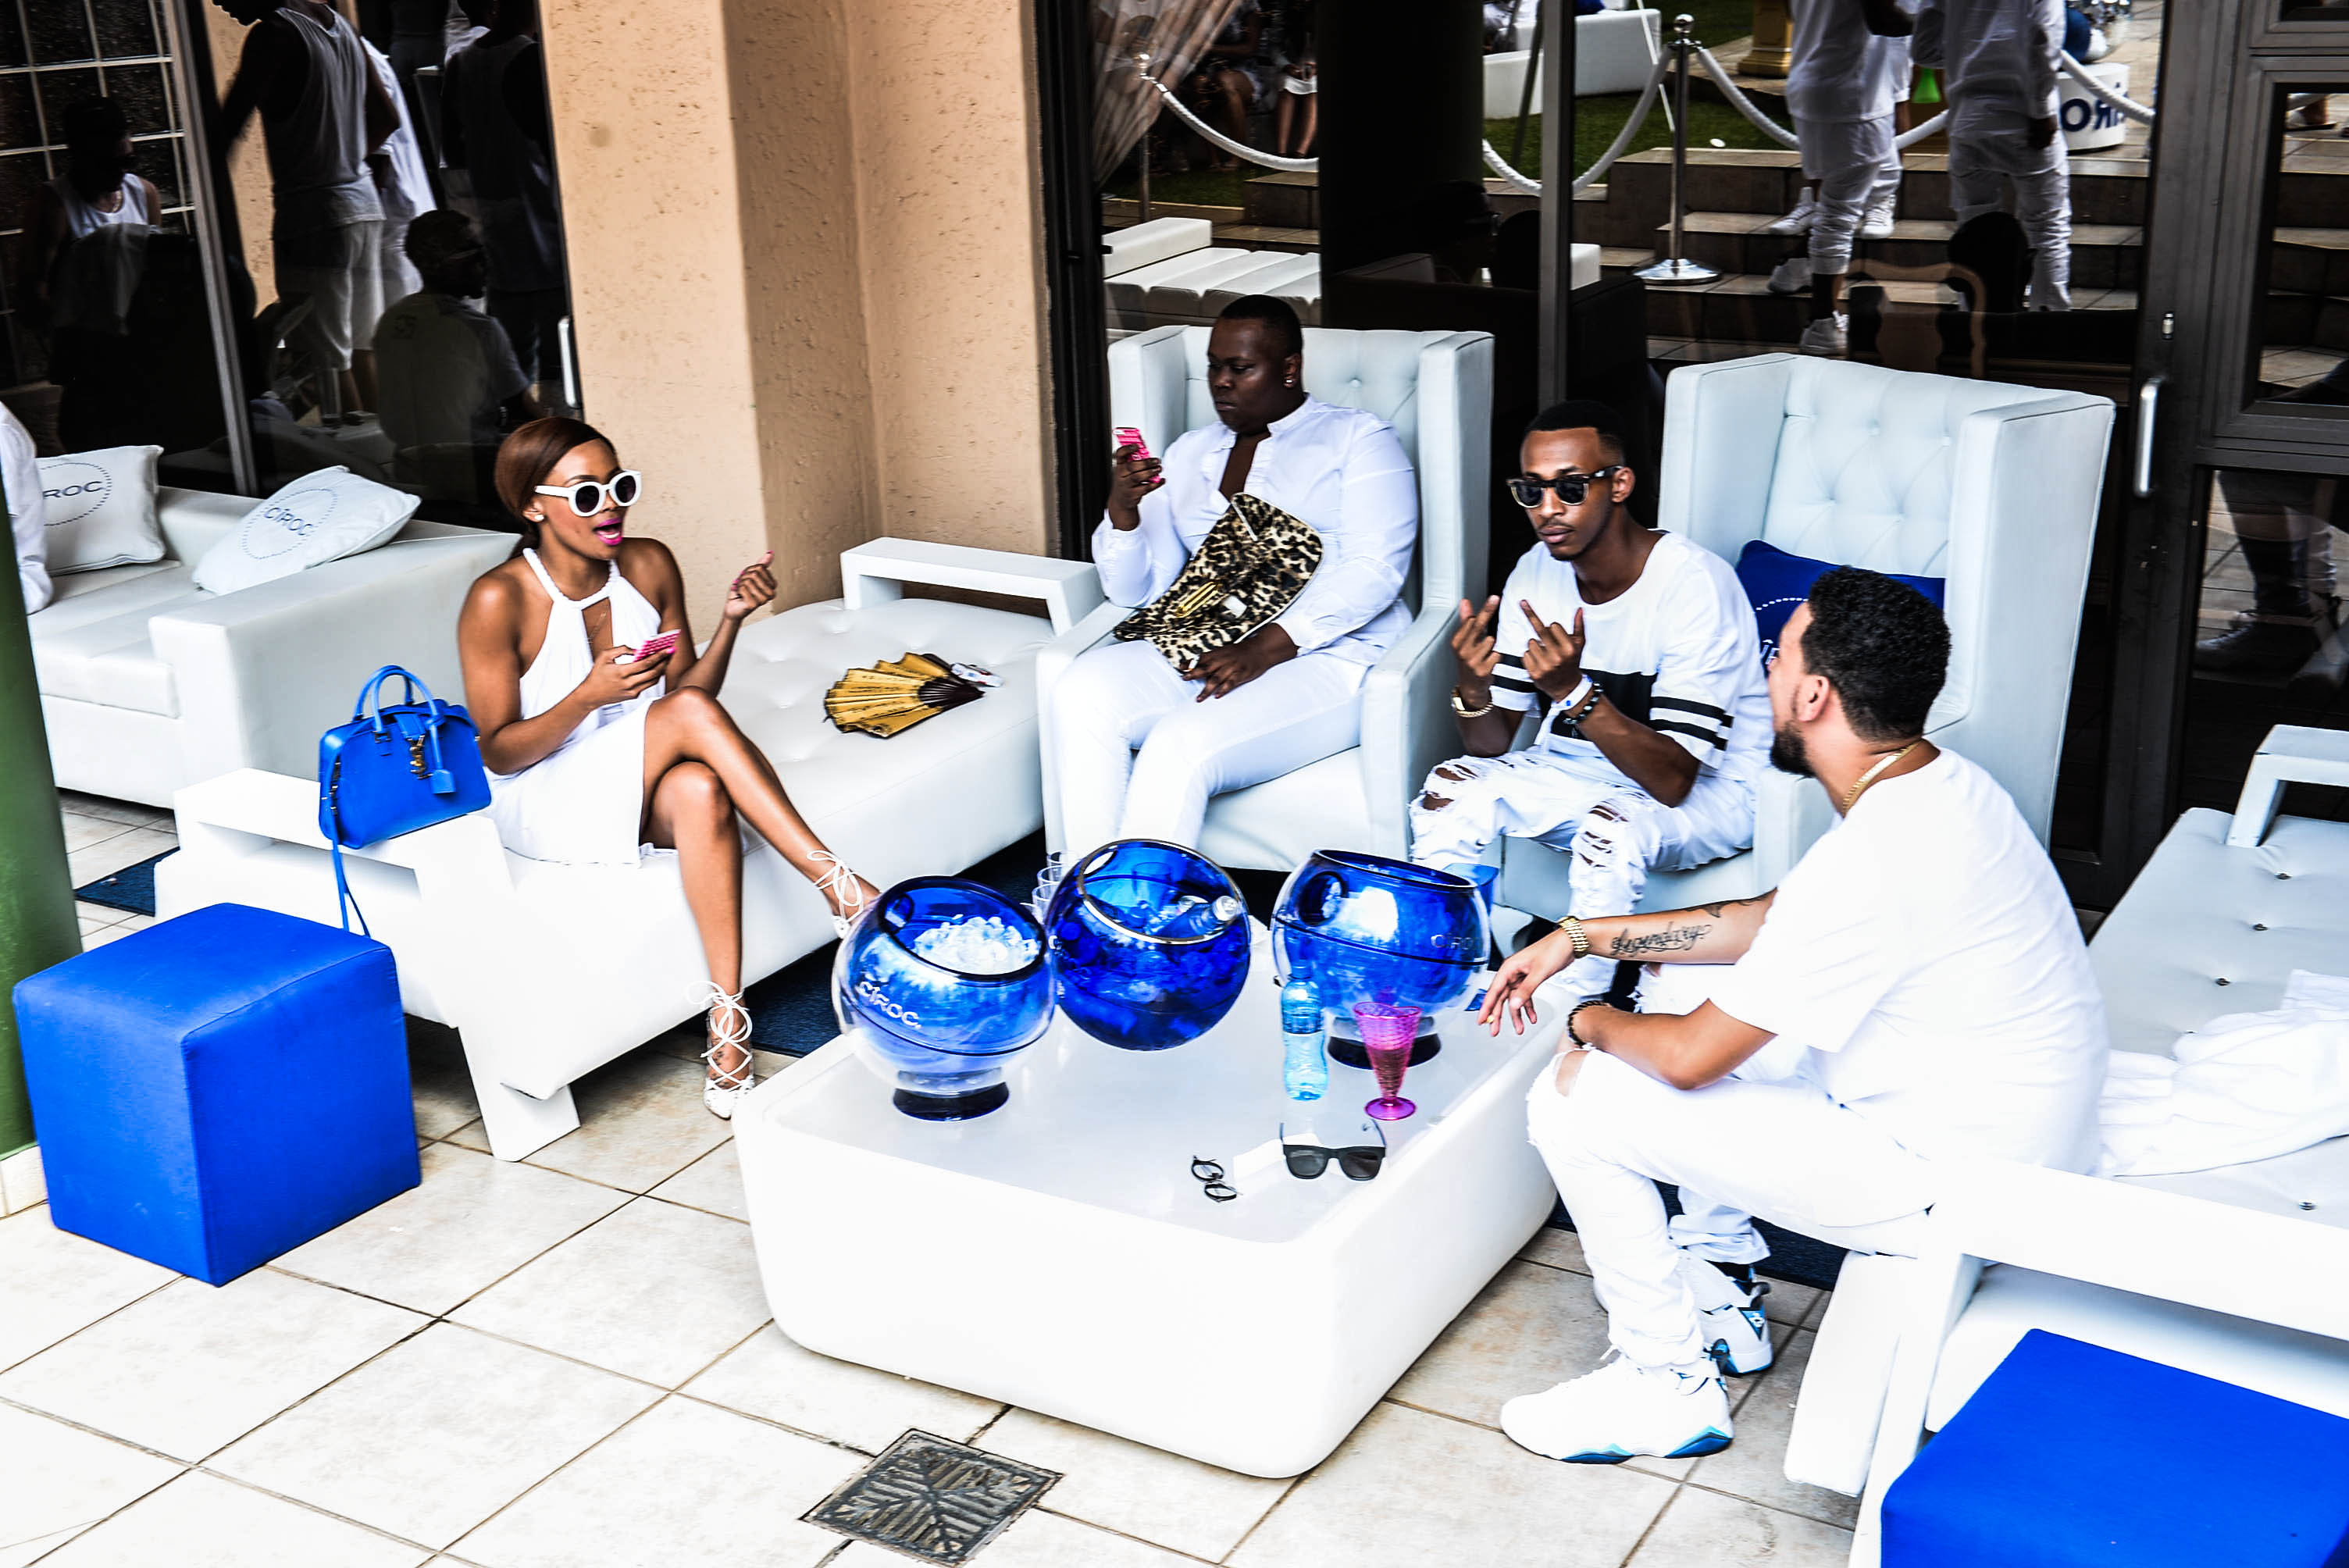 Cassper nyovest ciroc pool party leaked sextape - 3 8